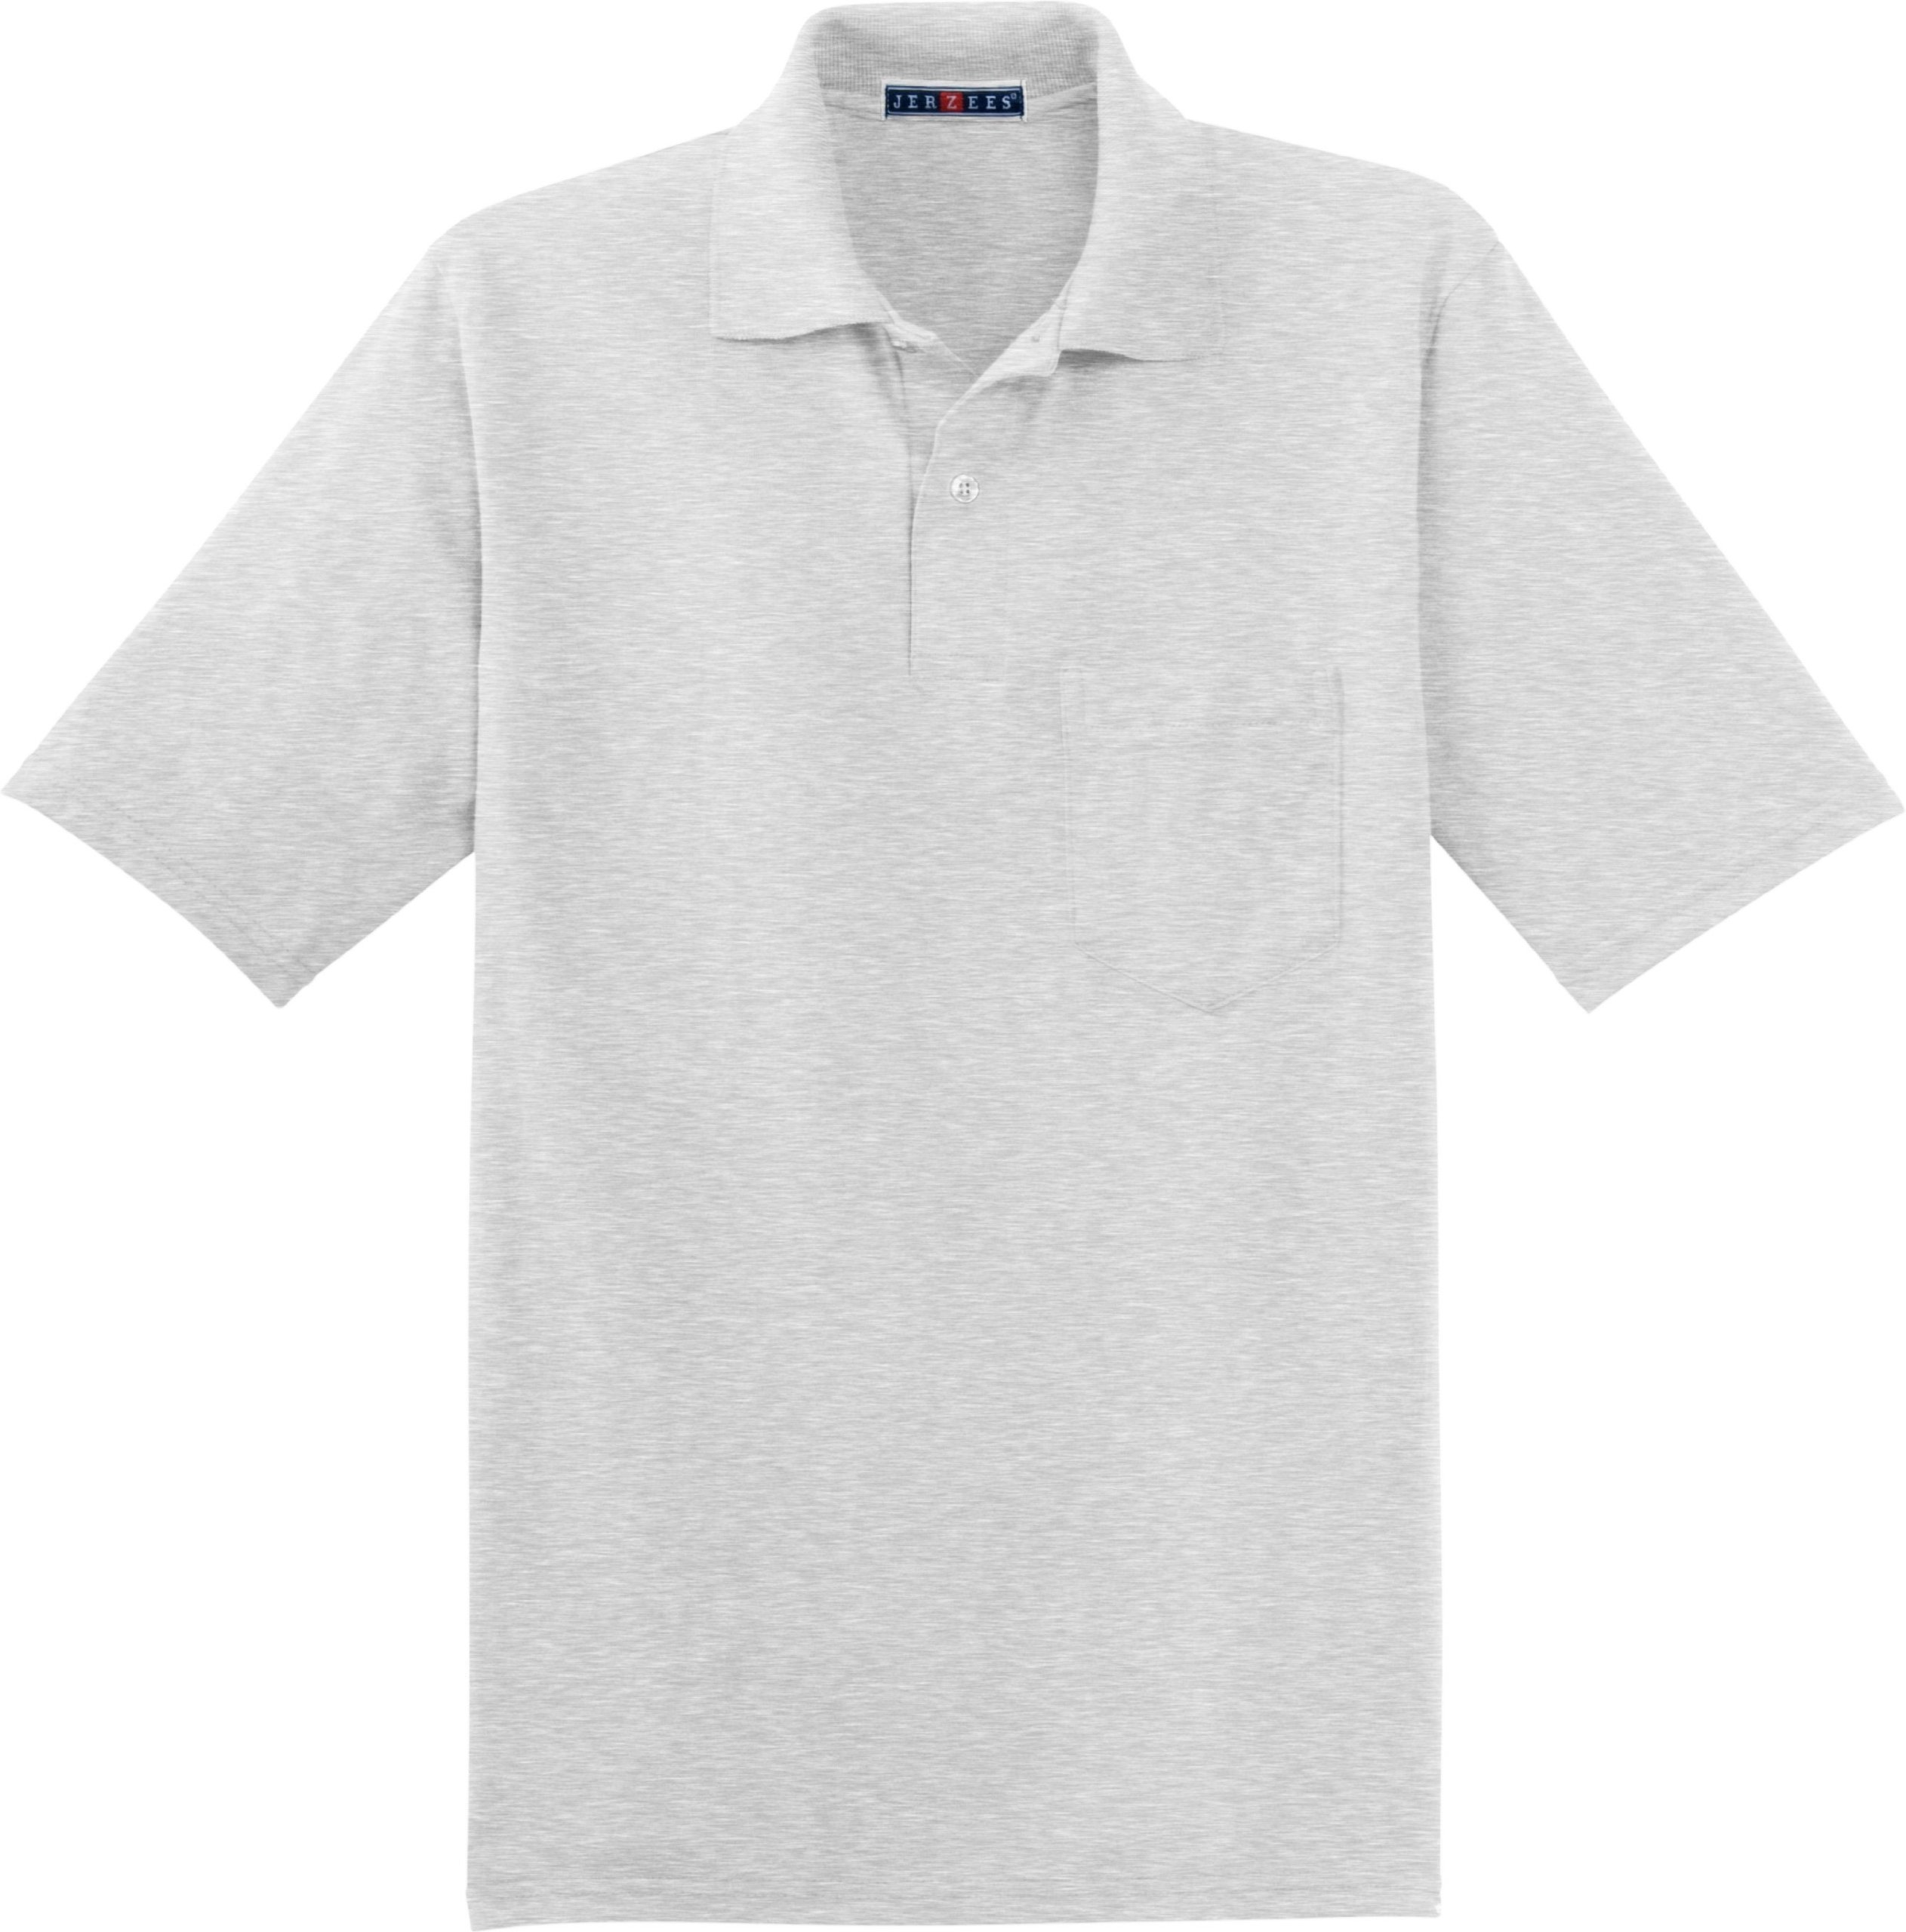 b31ab429 JERZEES -SpotShield 5.6-Ounce Jersey Knit Sport Shirt with Pocket. 436MP